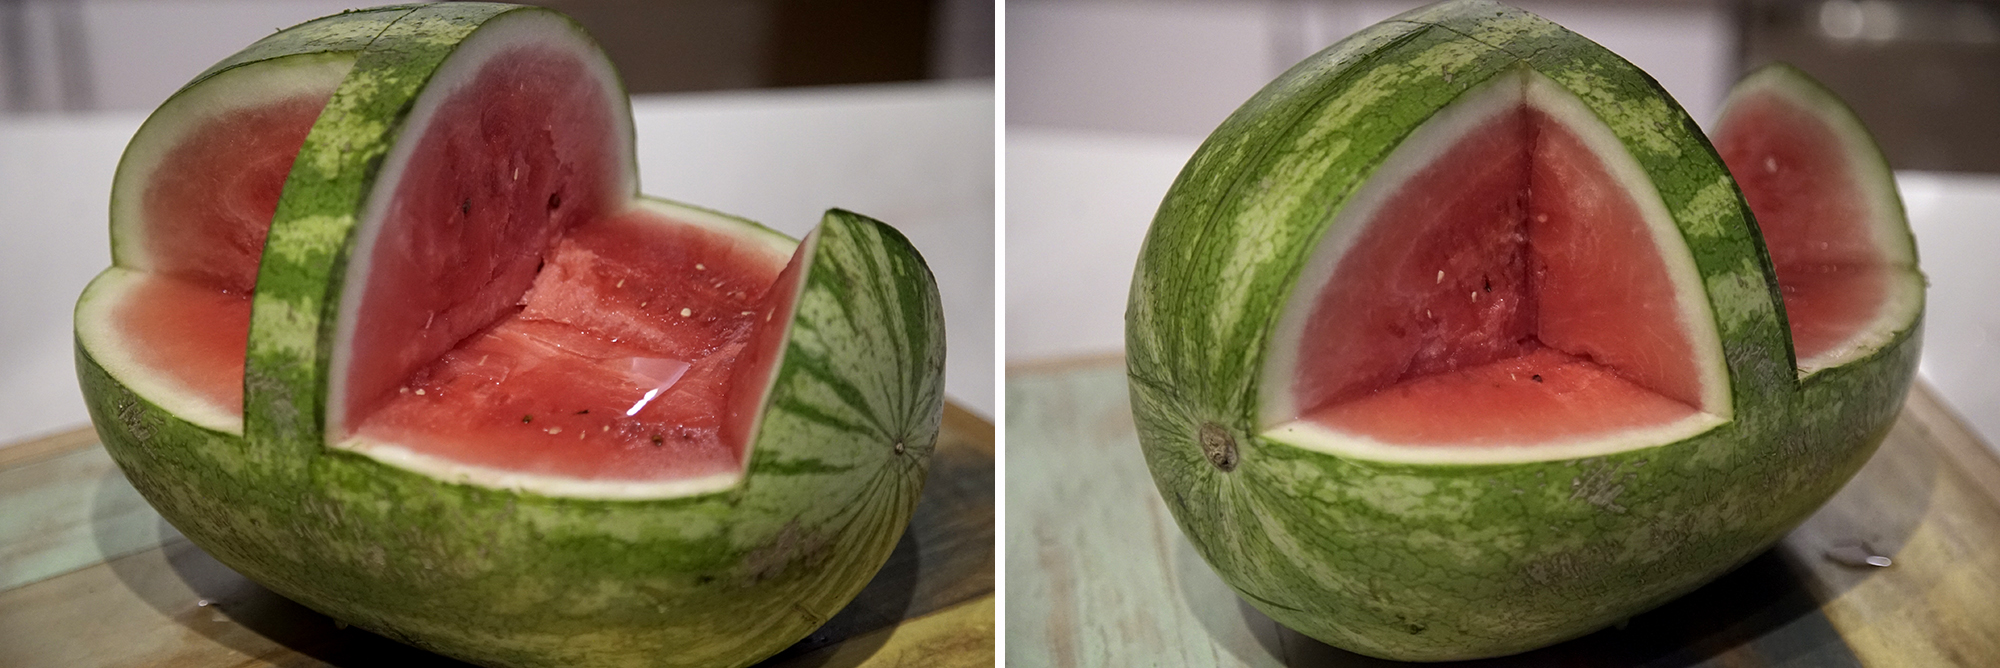 Watermelon_sidebyside_1